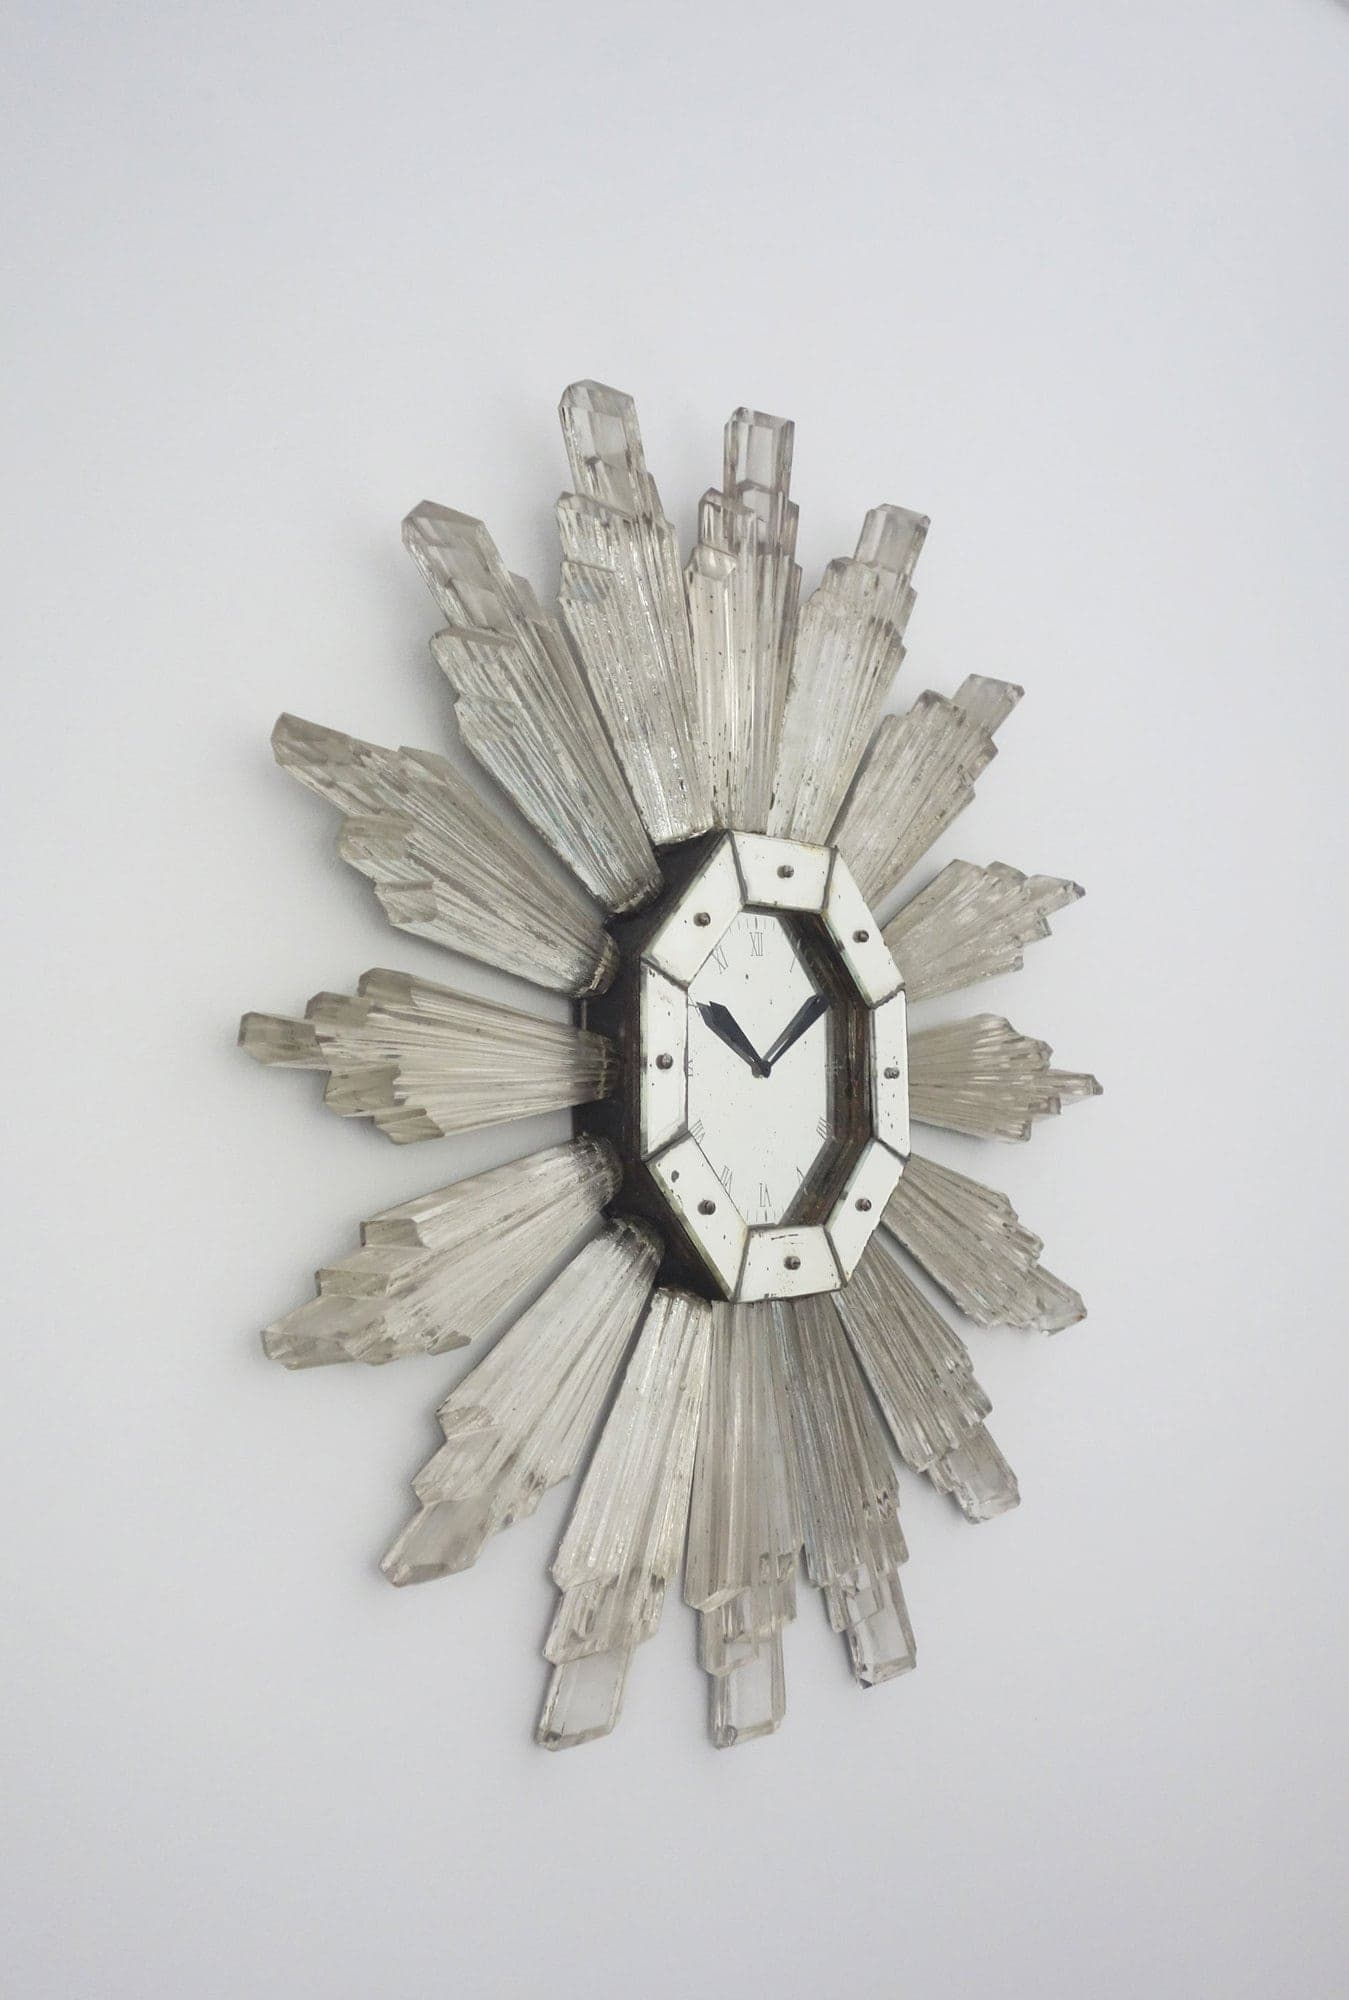 Serge Roche, Very rare wall clock (sold), vue 03